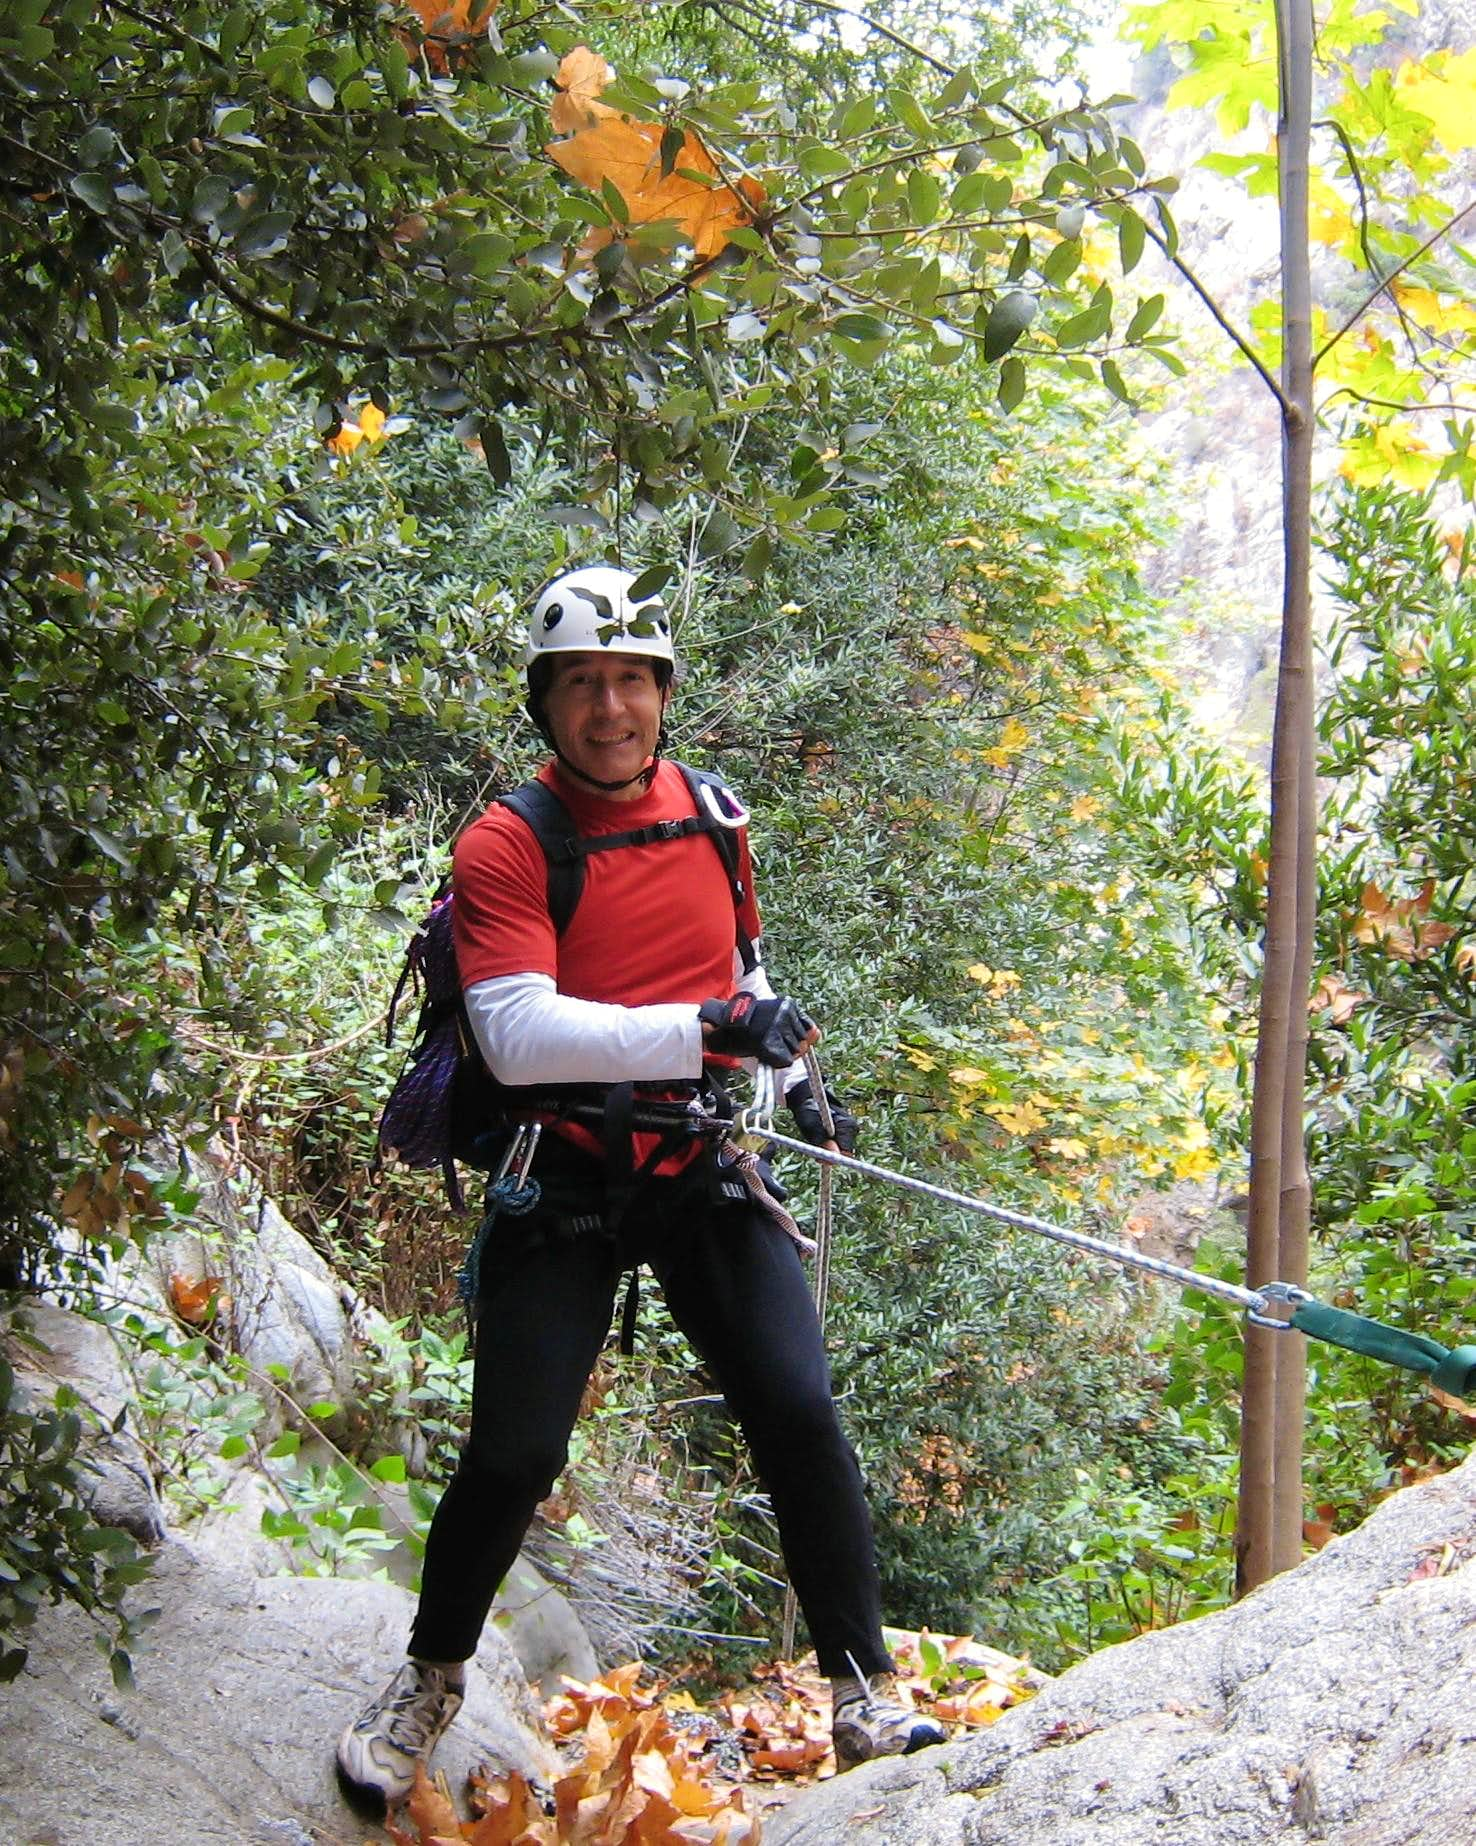 Brambles, Bees and Beauty: Canyoneering in the San Gabriel Mountains